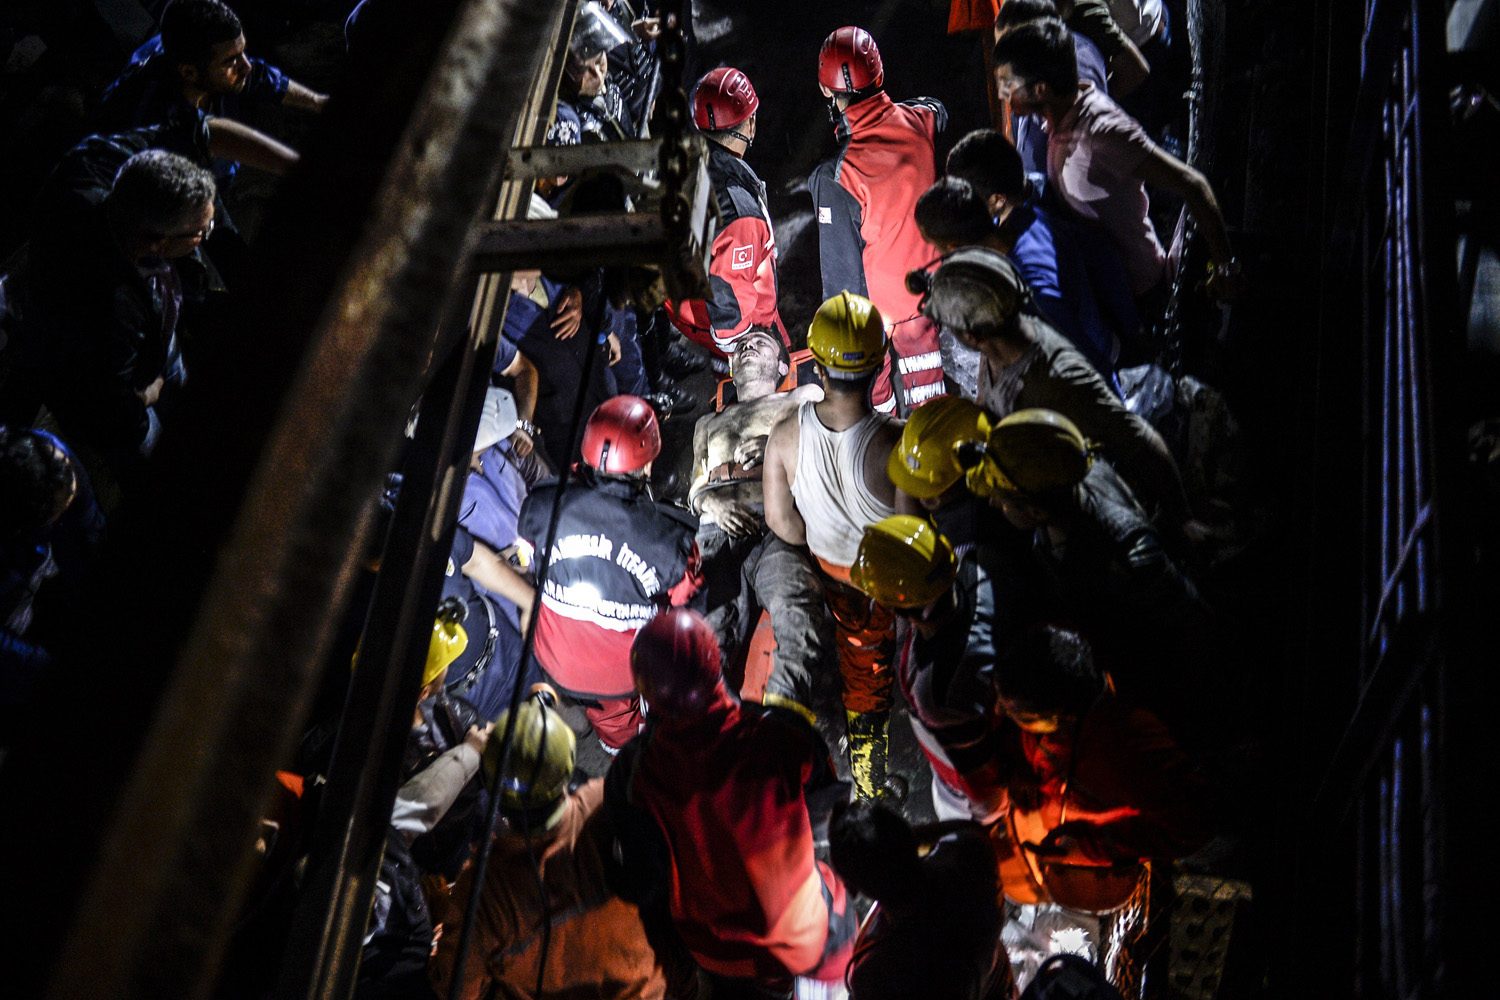 An injured miner is  carried by rescuers after an explosion in a coal mine on  Manisa, Turkey, May 13, 2014.